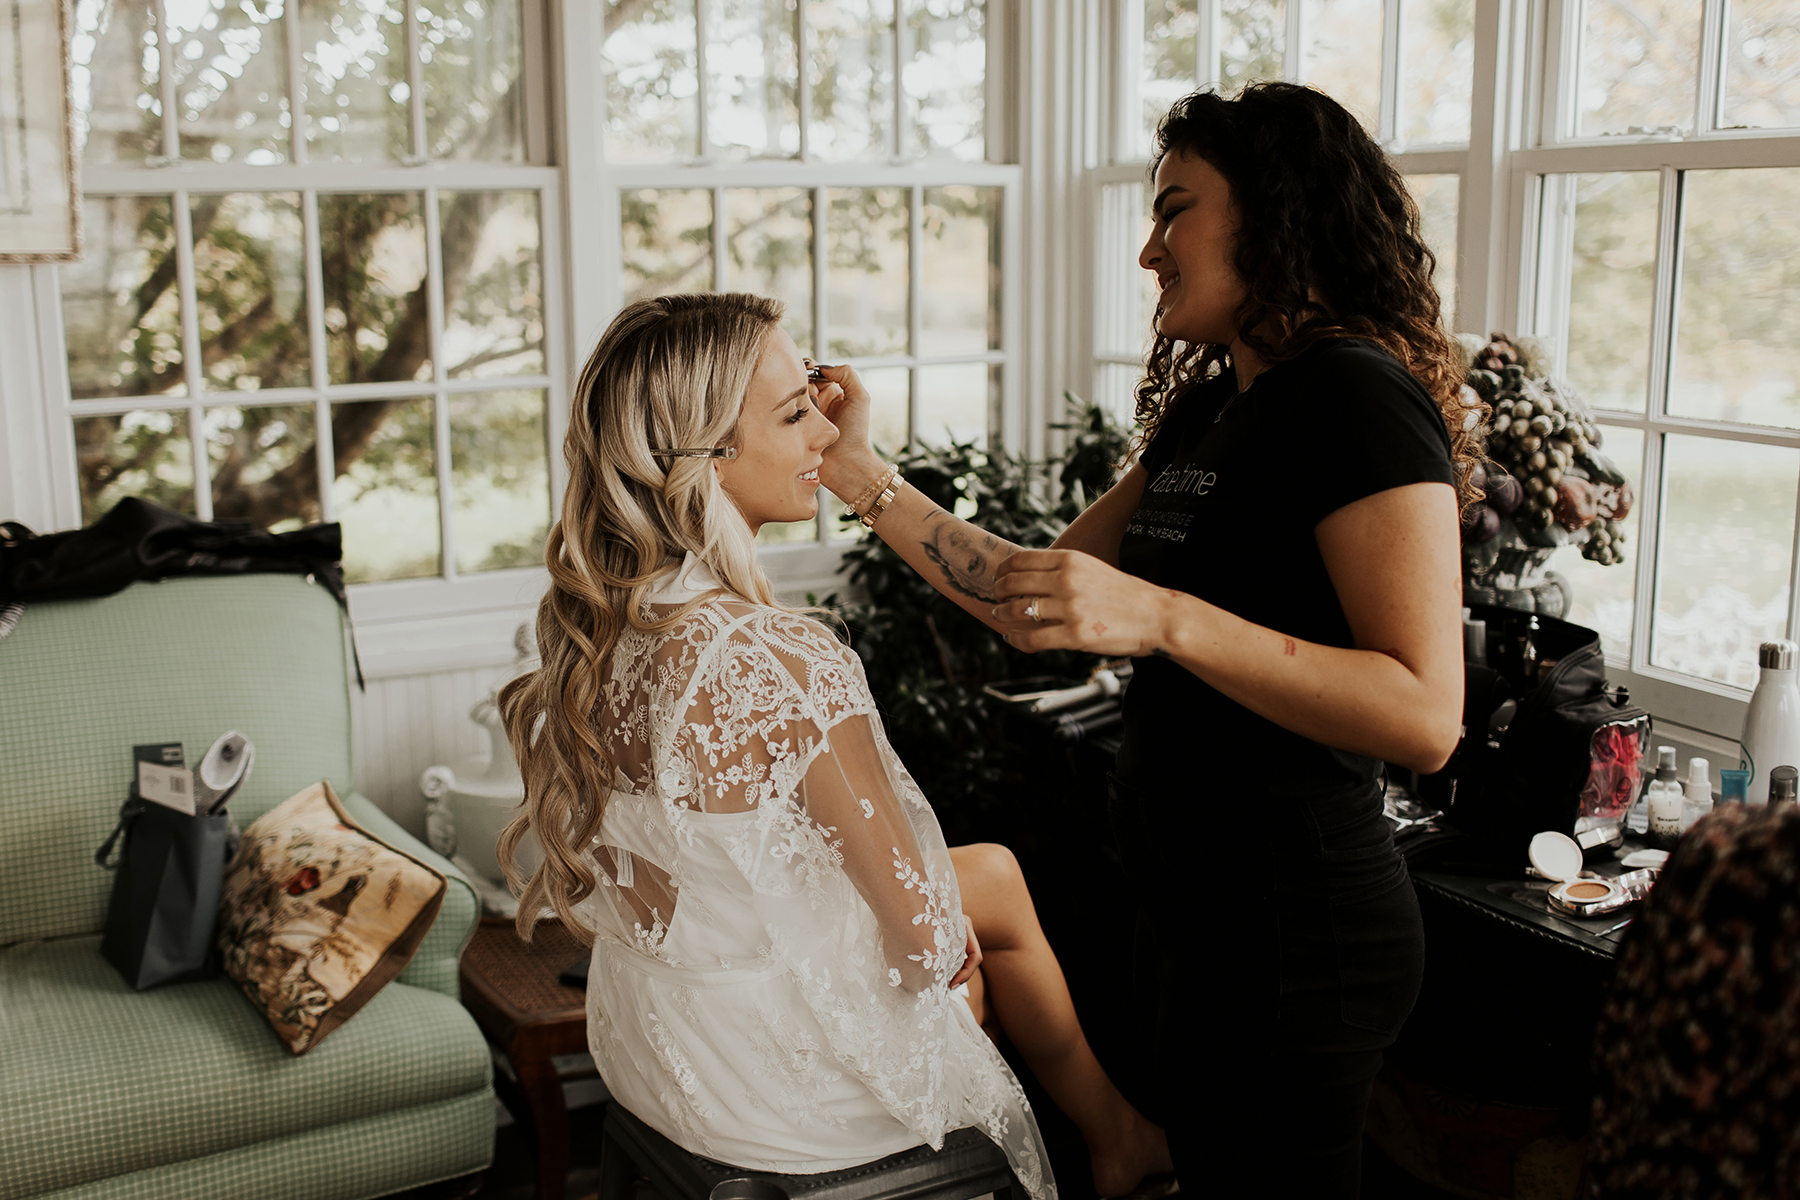 Katies Bliss Wedding Getting Ready Photos